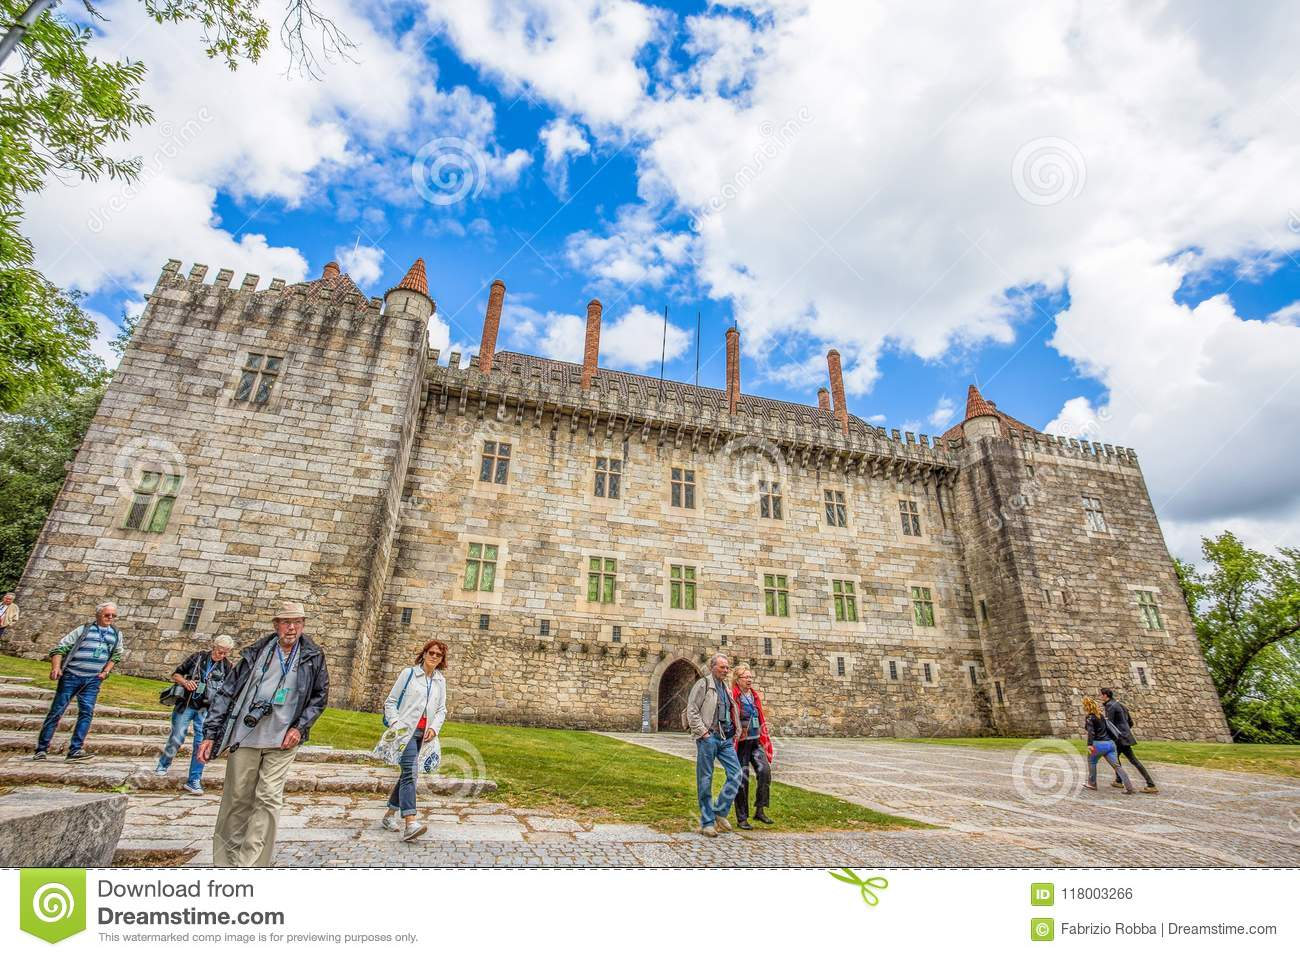 Guimaraes Castle in Guimaraes, Braga District, Portugal. It is one of the oldest Portuguese castles. Alfonso I Henriques, the firs